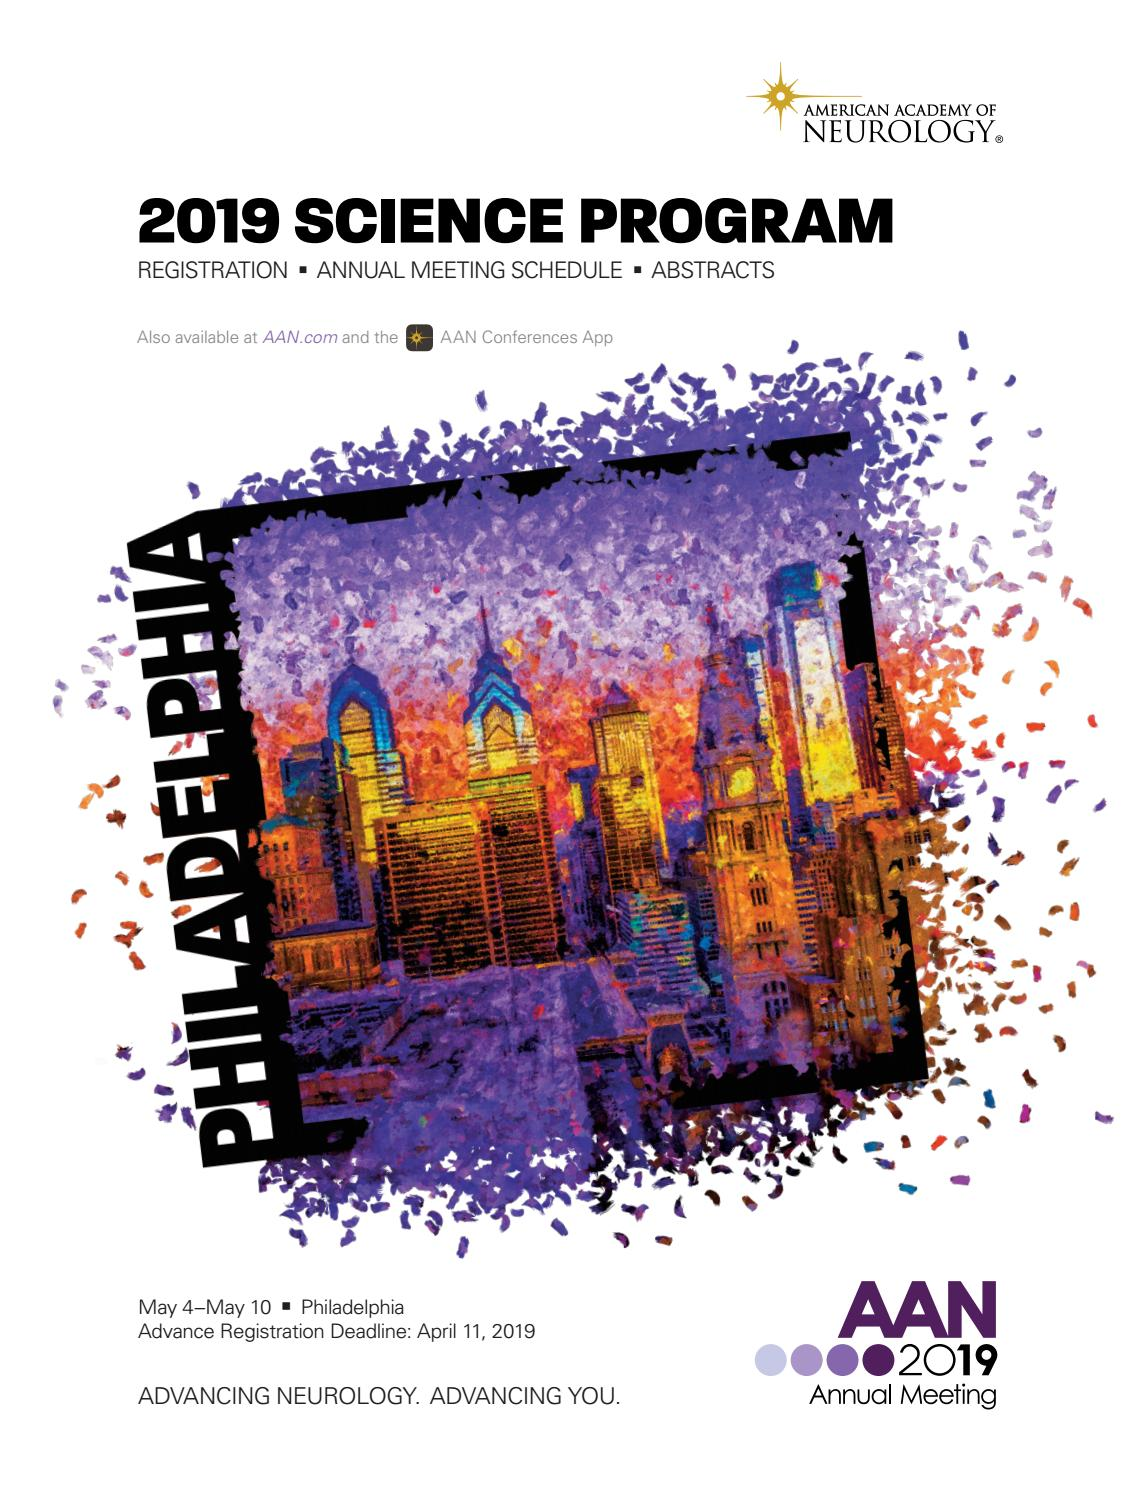 2019 Science Program By American Academy Of Neurology Issuu Pentru a scrie un review trebuie sa fii autentificat. american academy of neurology